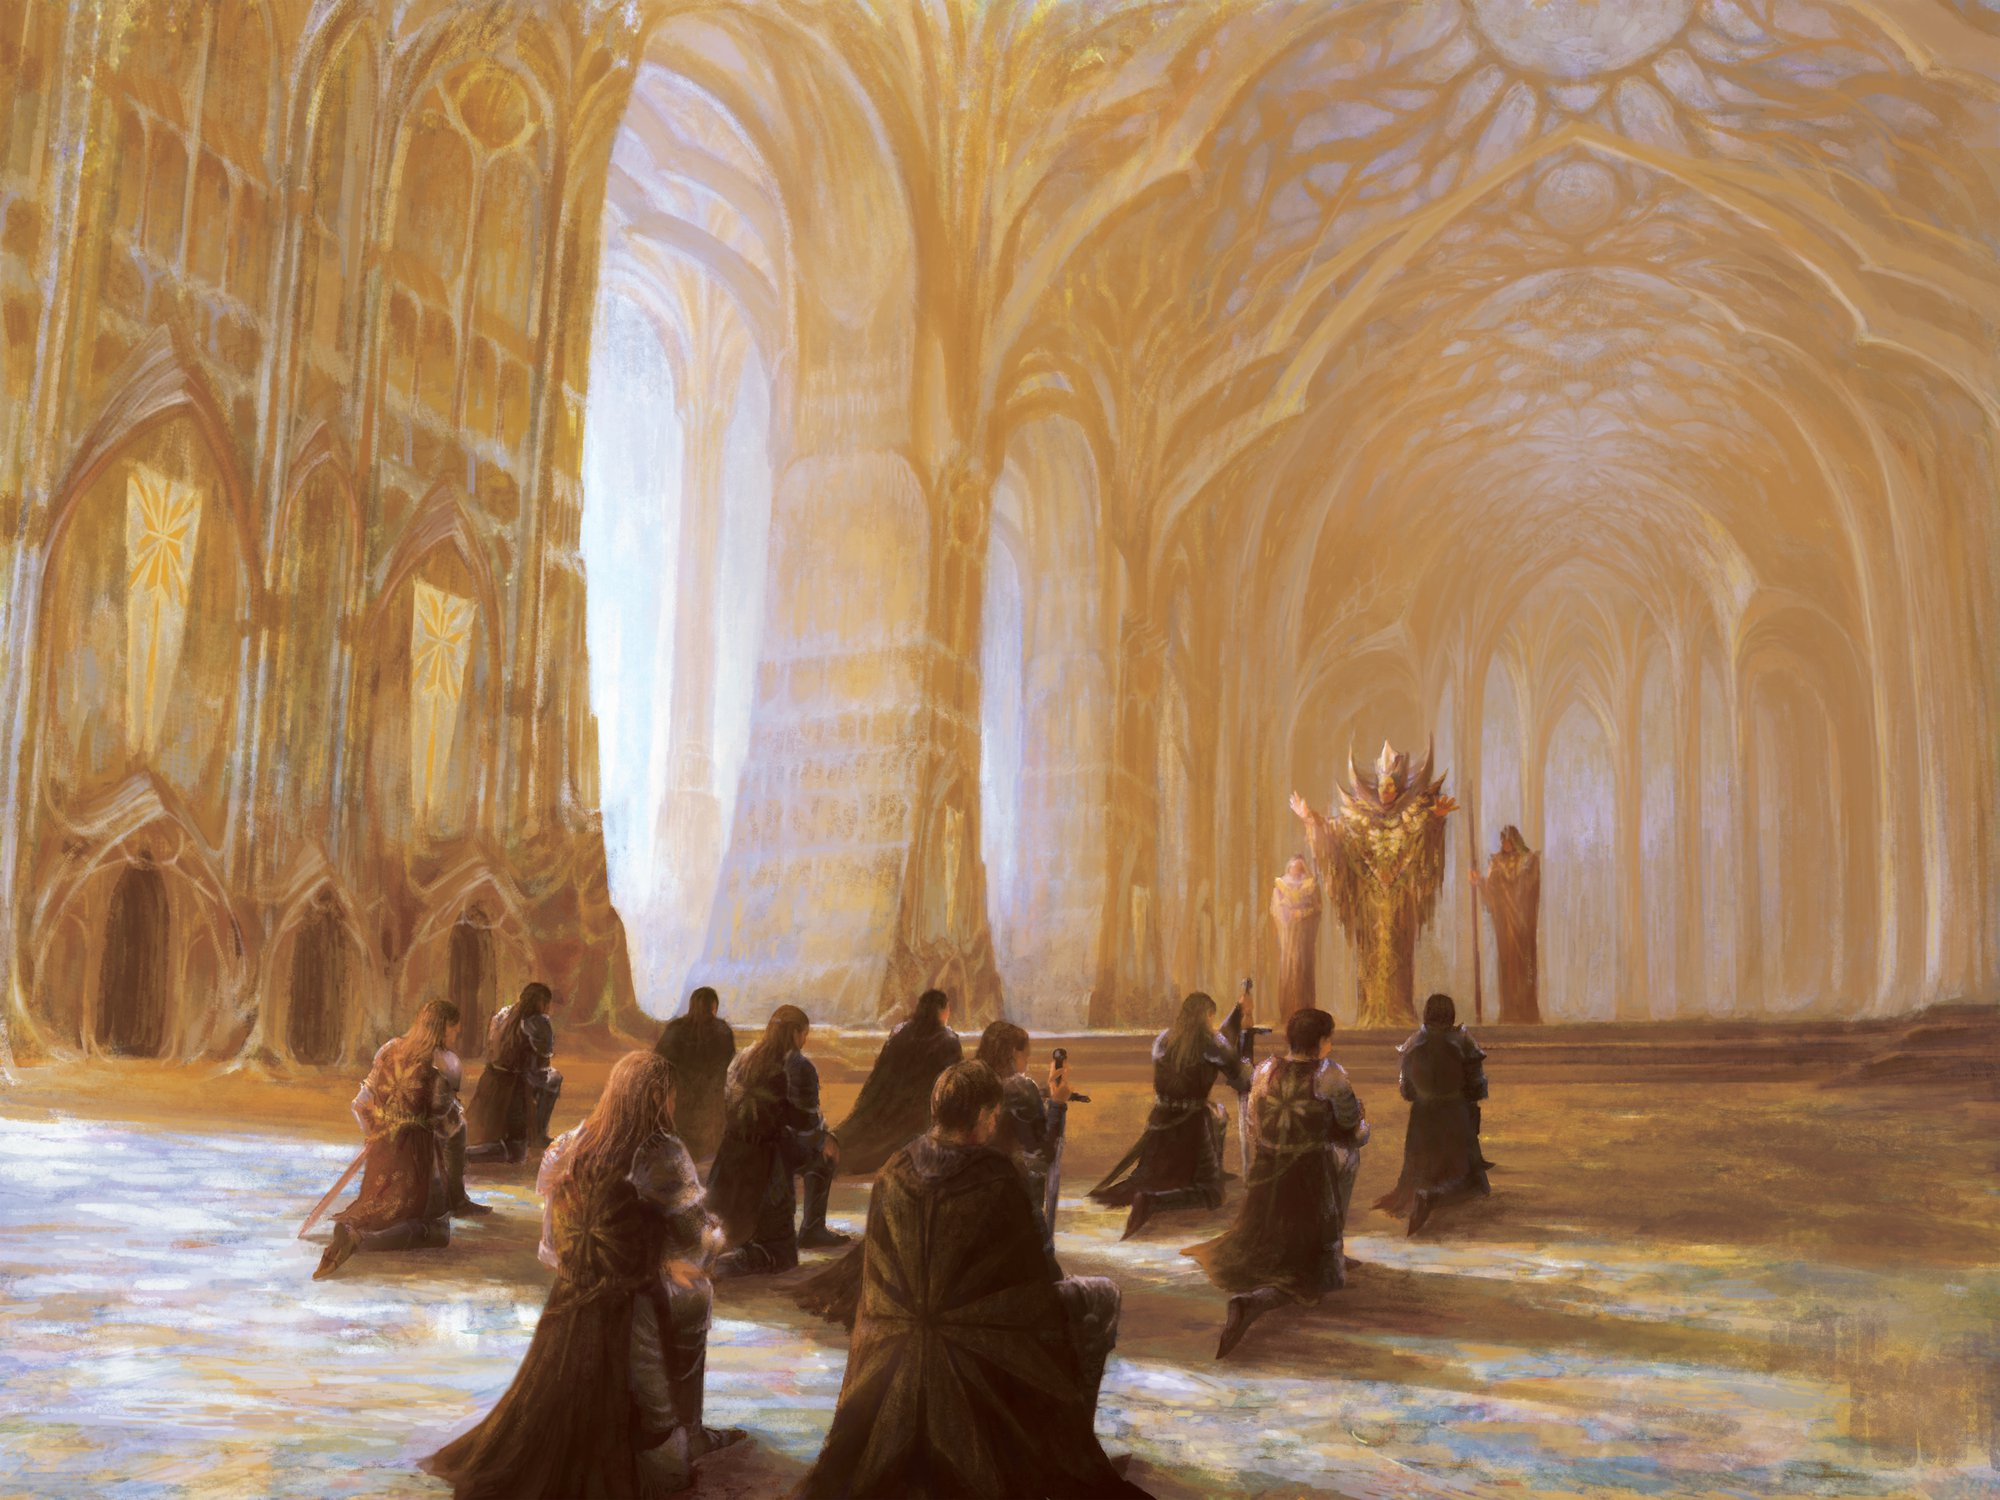 Warrior's Valor © 2019 Legend Story Studios. Illustrated by Daria Khlebnikova